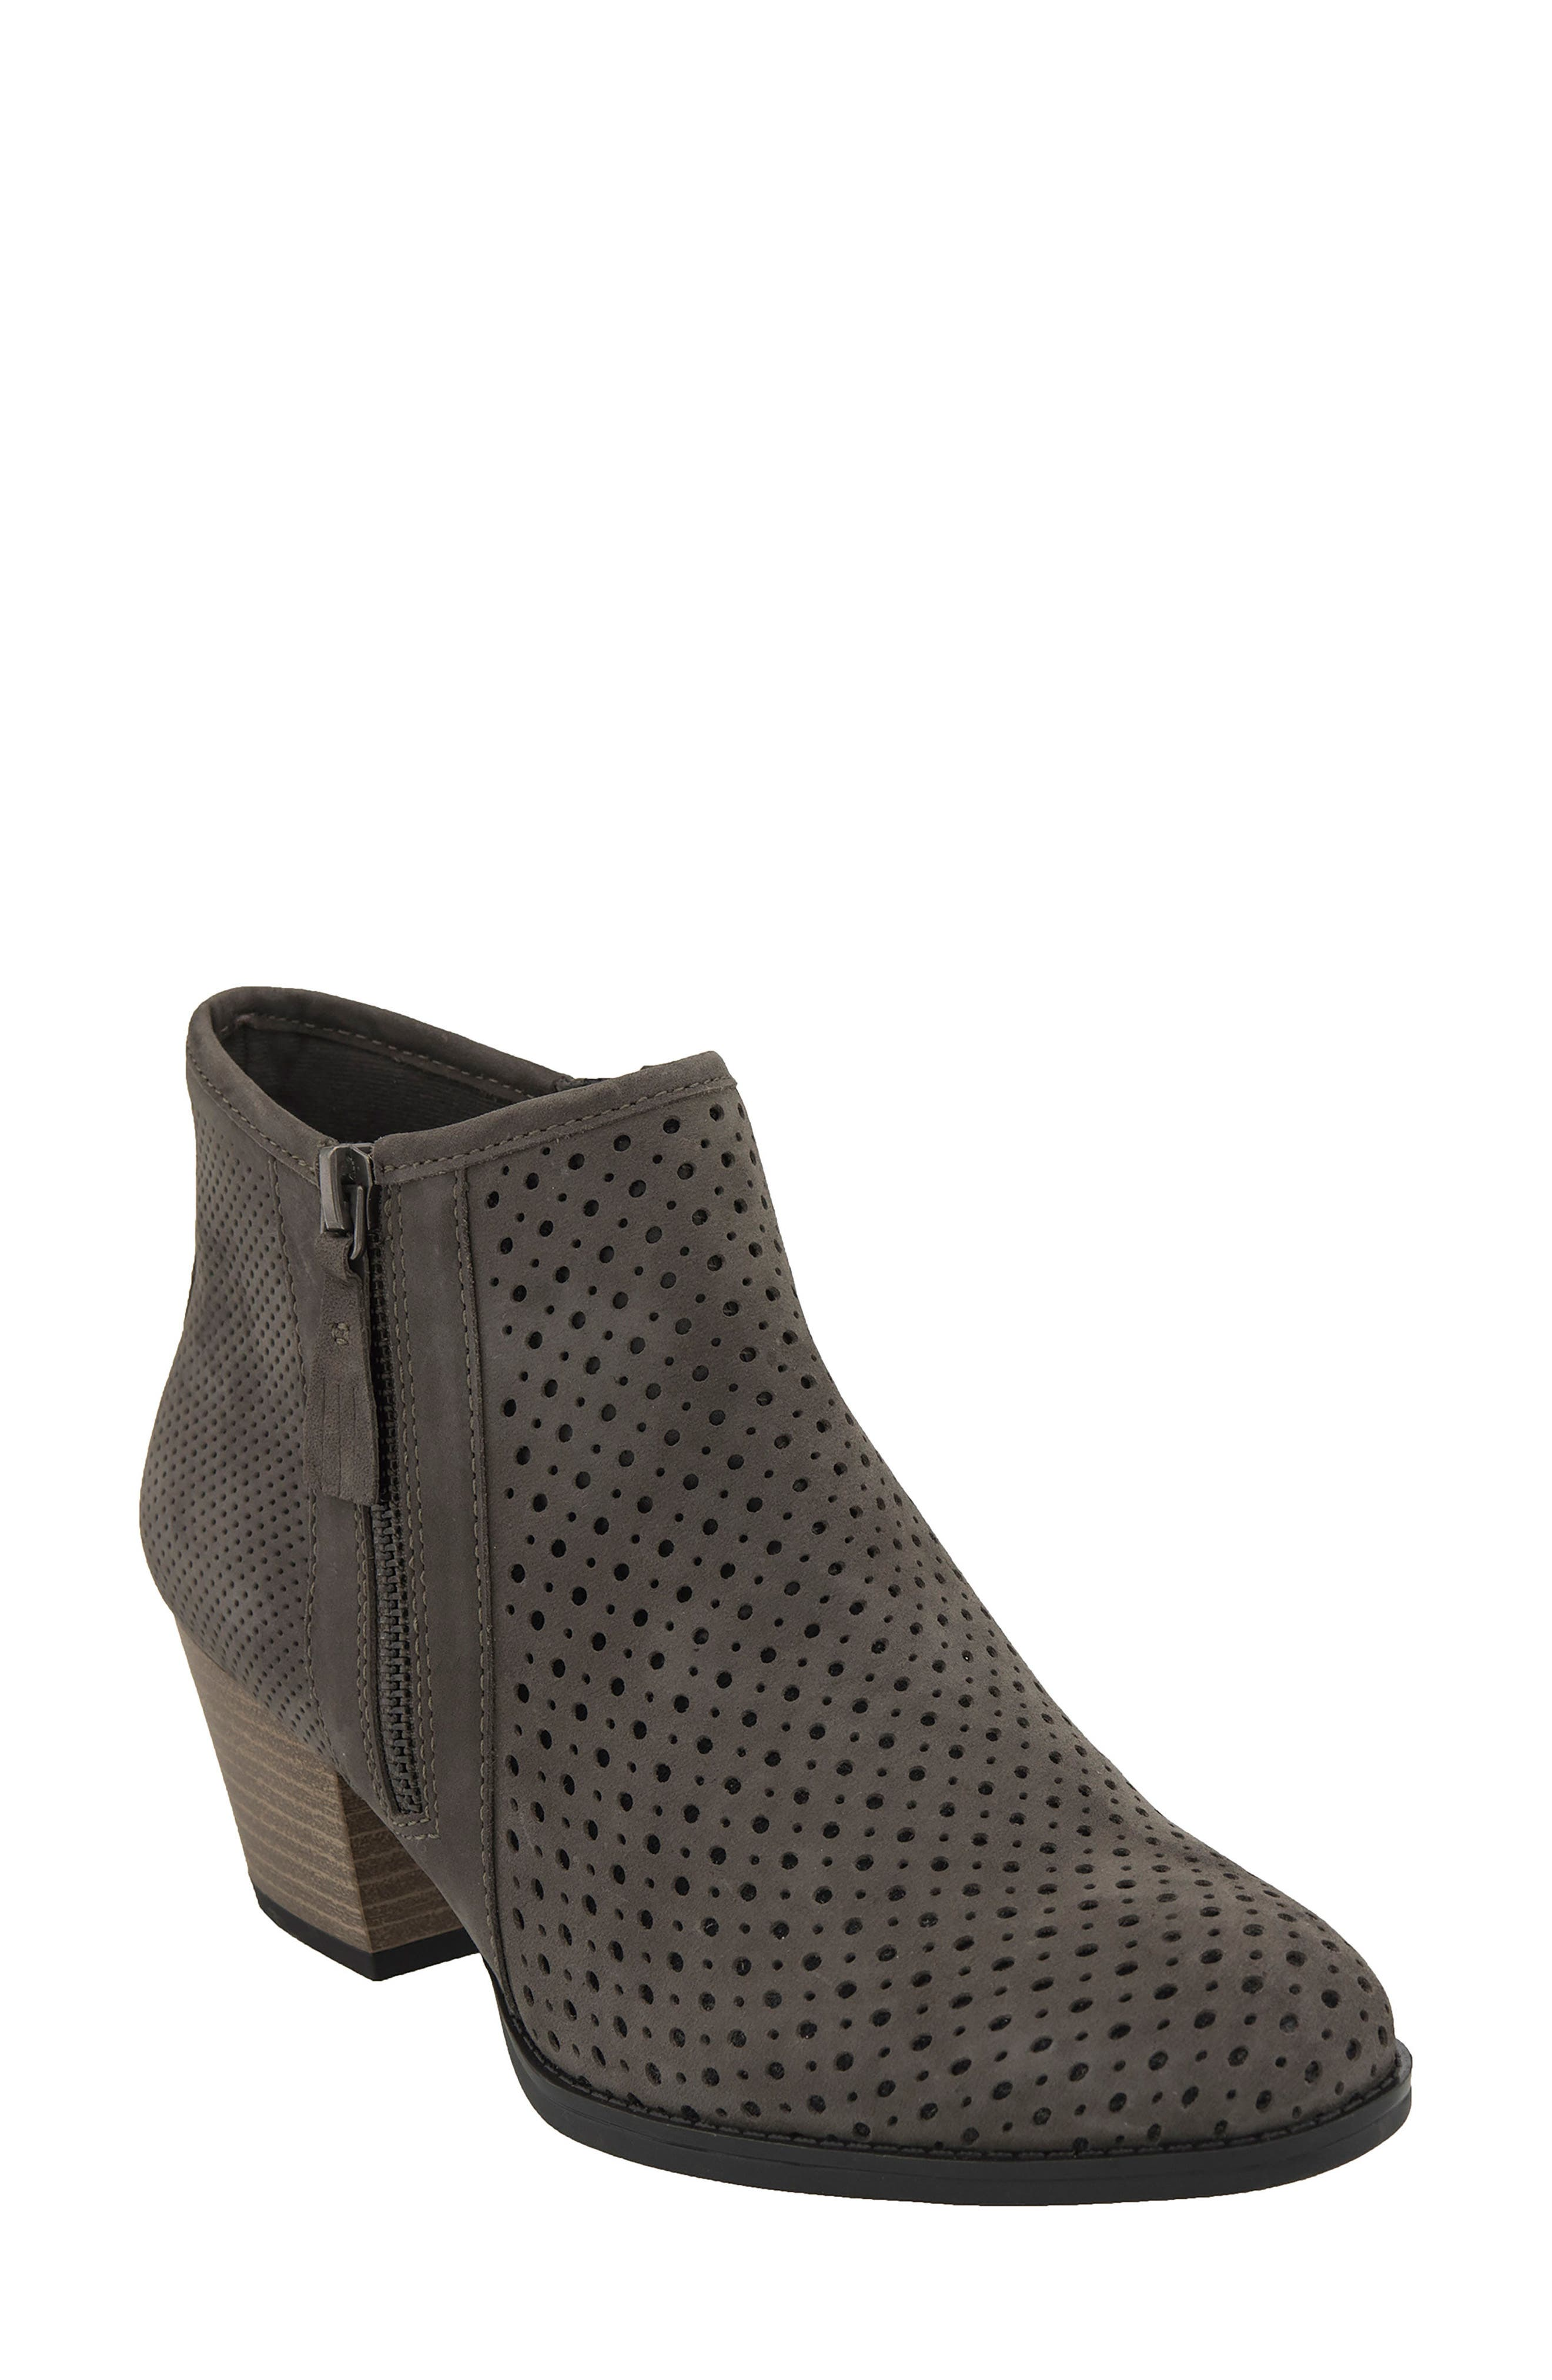 Pineberry 2 Bootie,                         Main,                         color, 027